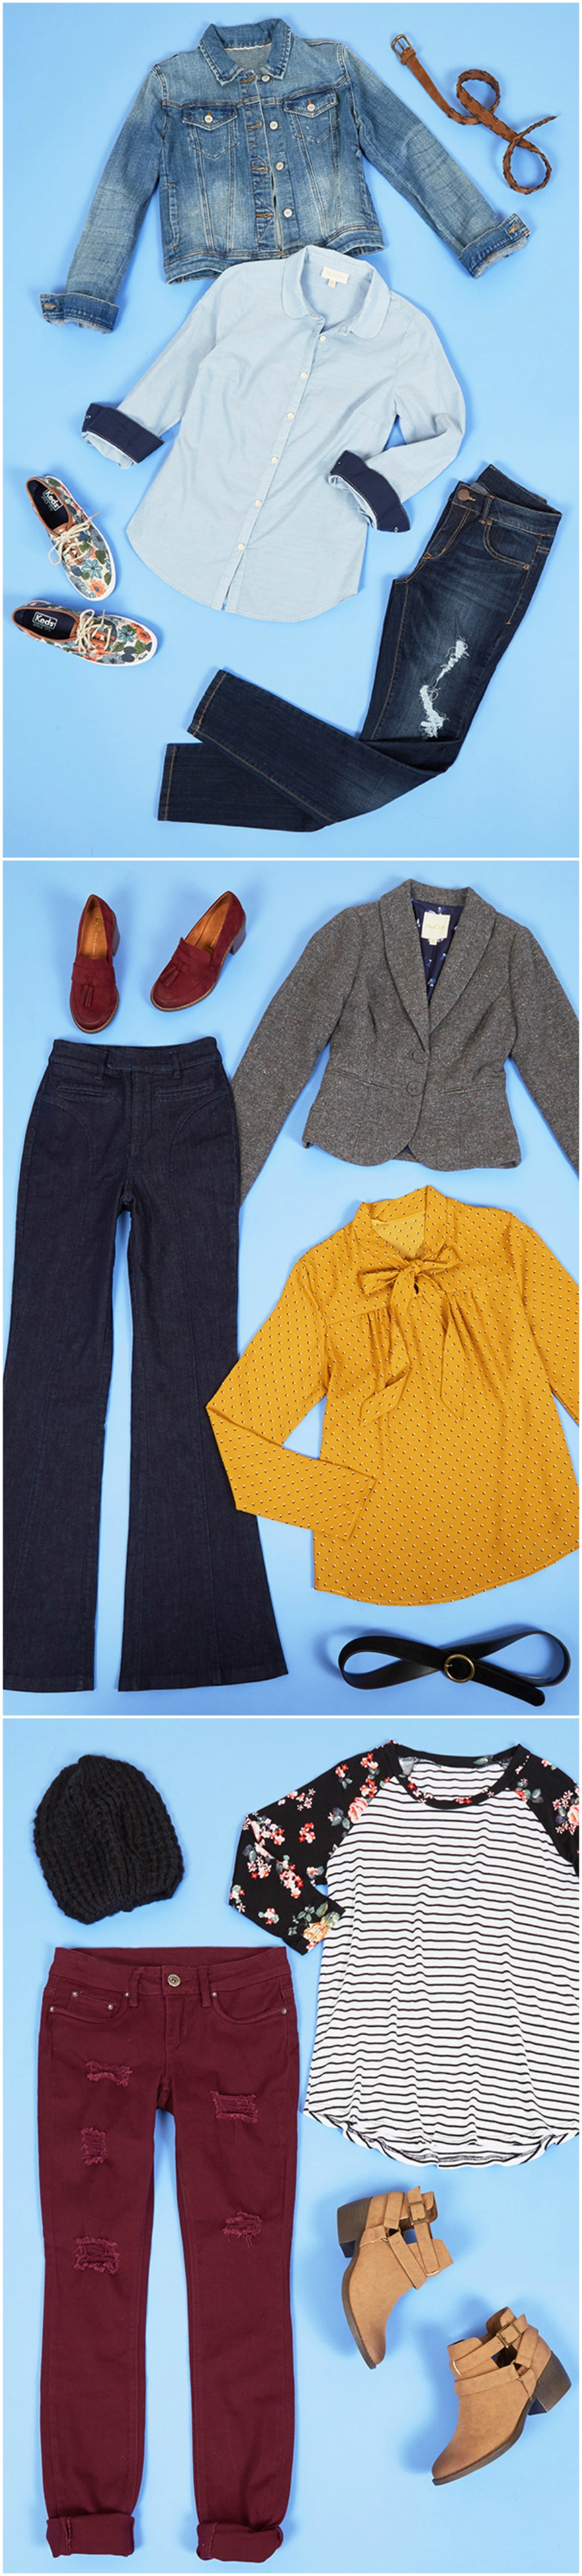 Delightful denim styling tips for work, casual moments, and head-to-toe jeans!